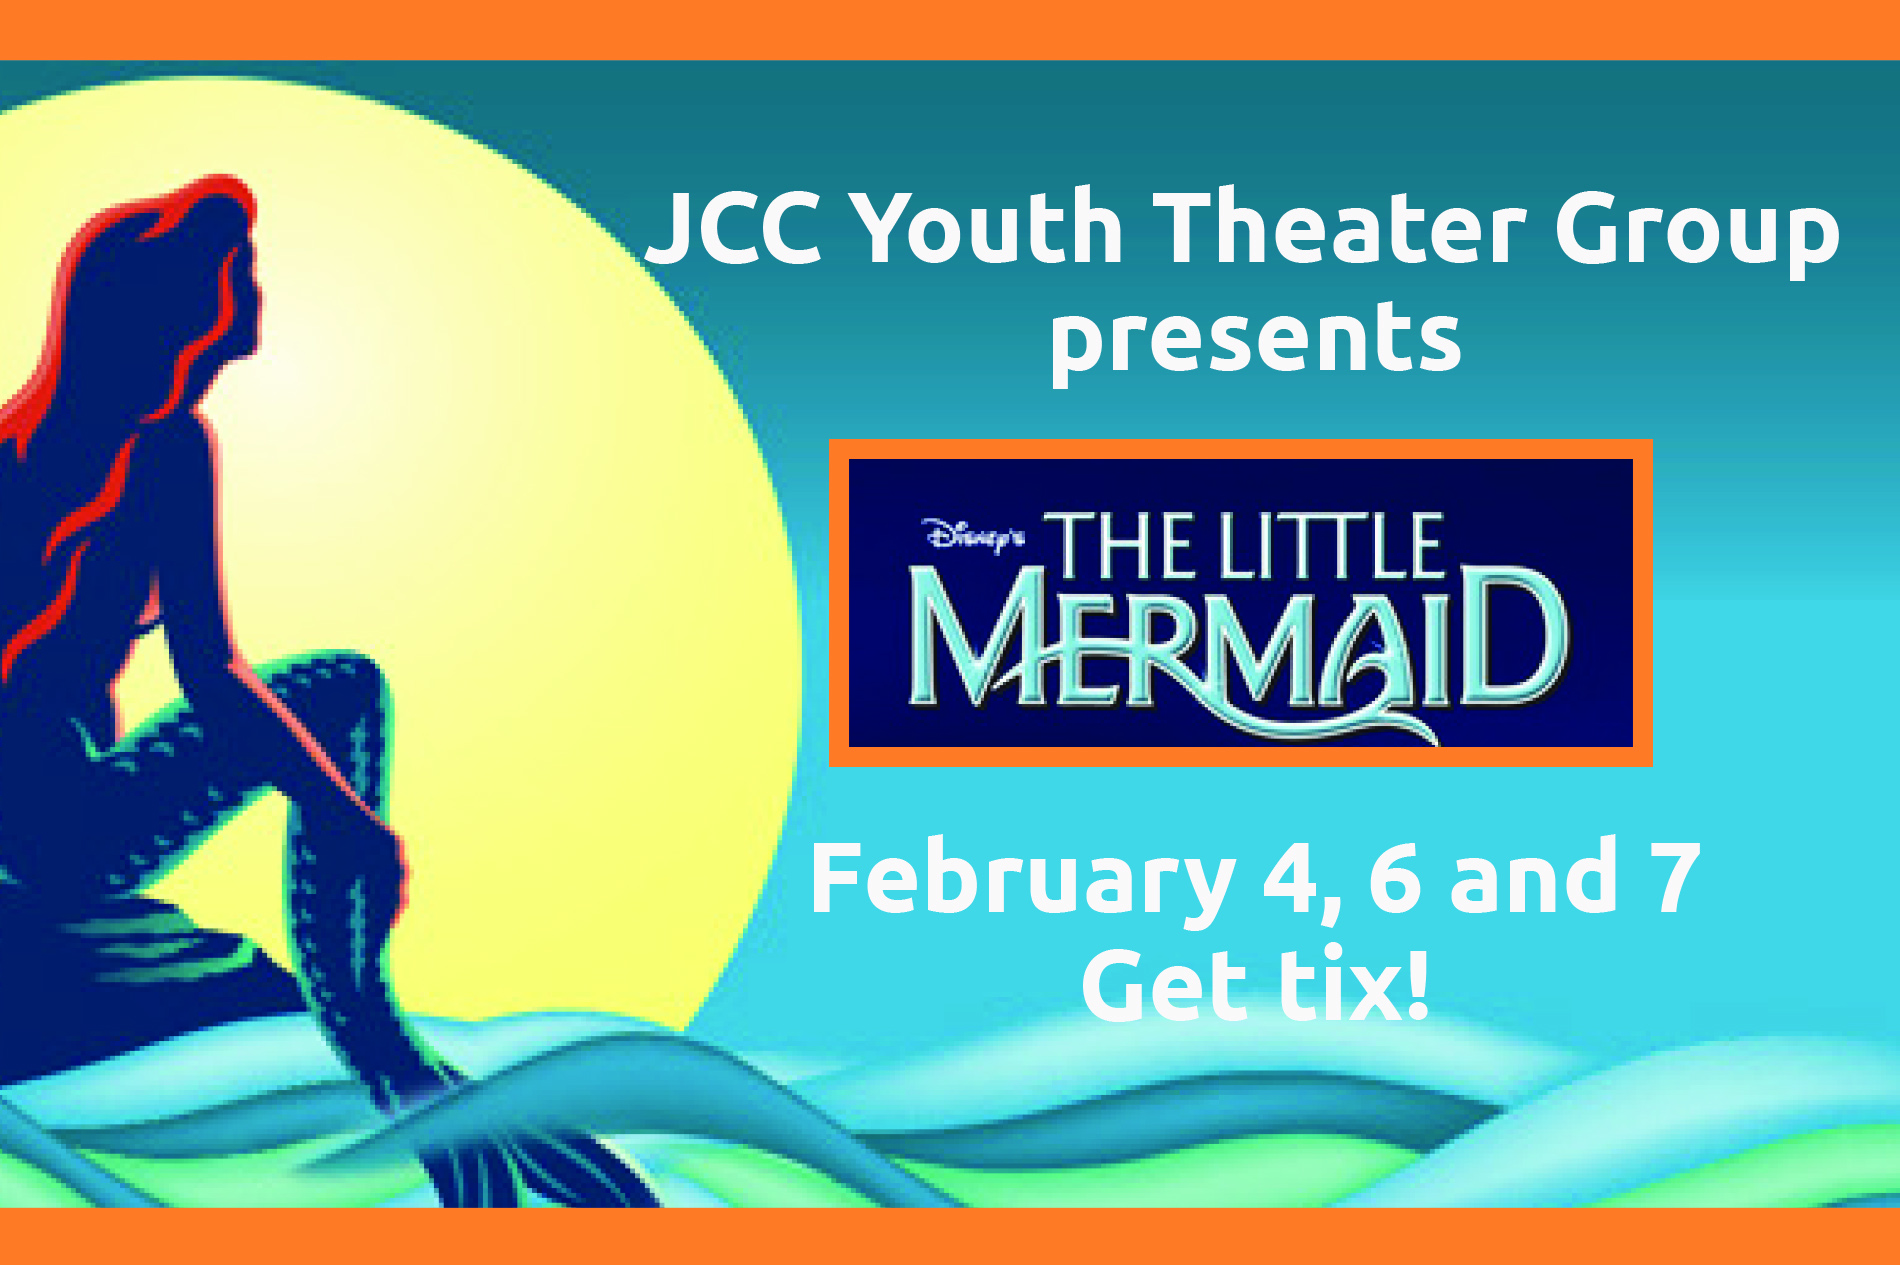 6041f2e5d3d48f5e7926_JCC_Little_Mermaid_poster.jpg